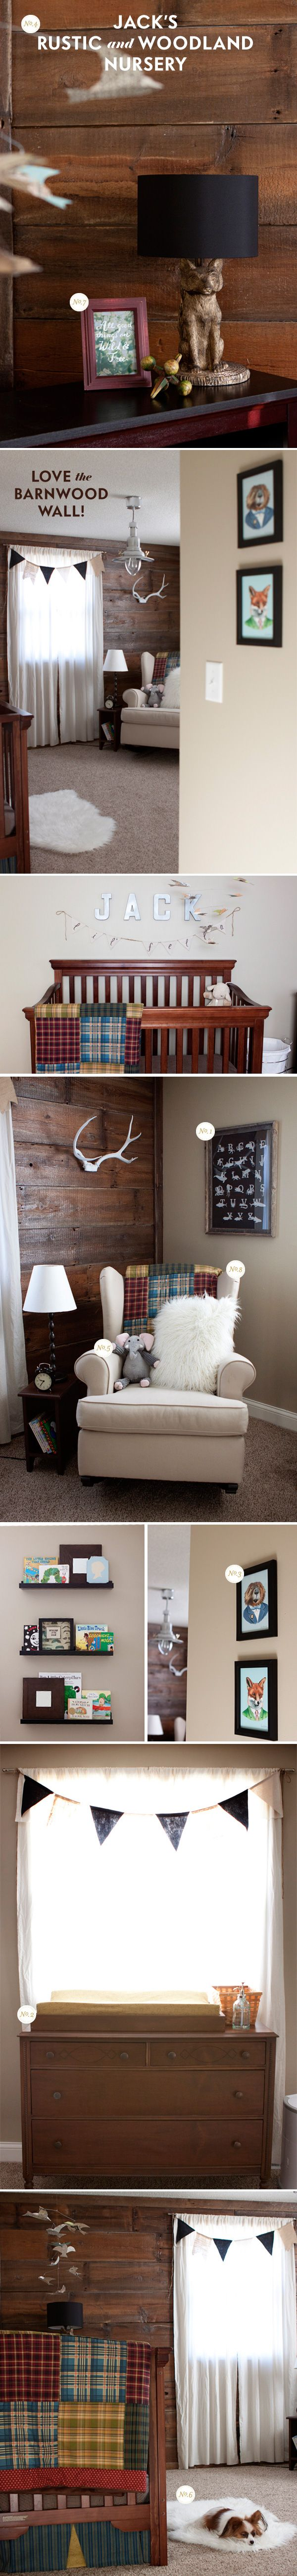 A rustic nursery with barnwood wall via Lay Baby Lay I could twist it to be gender neutral or for a girl! Love this!